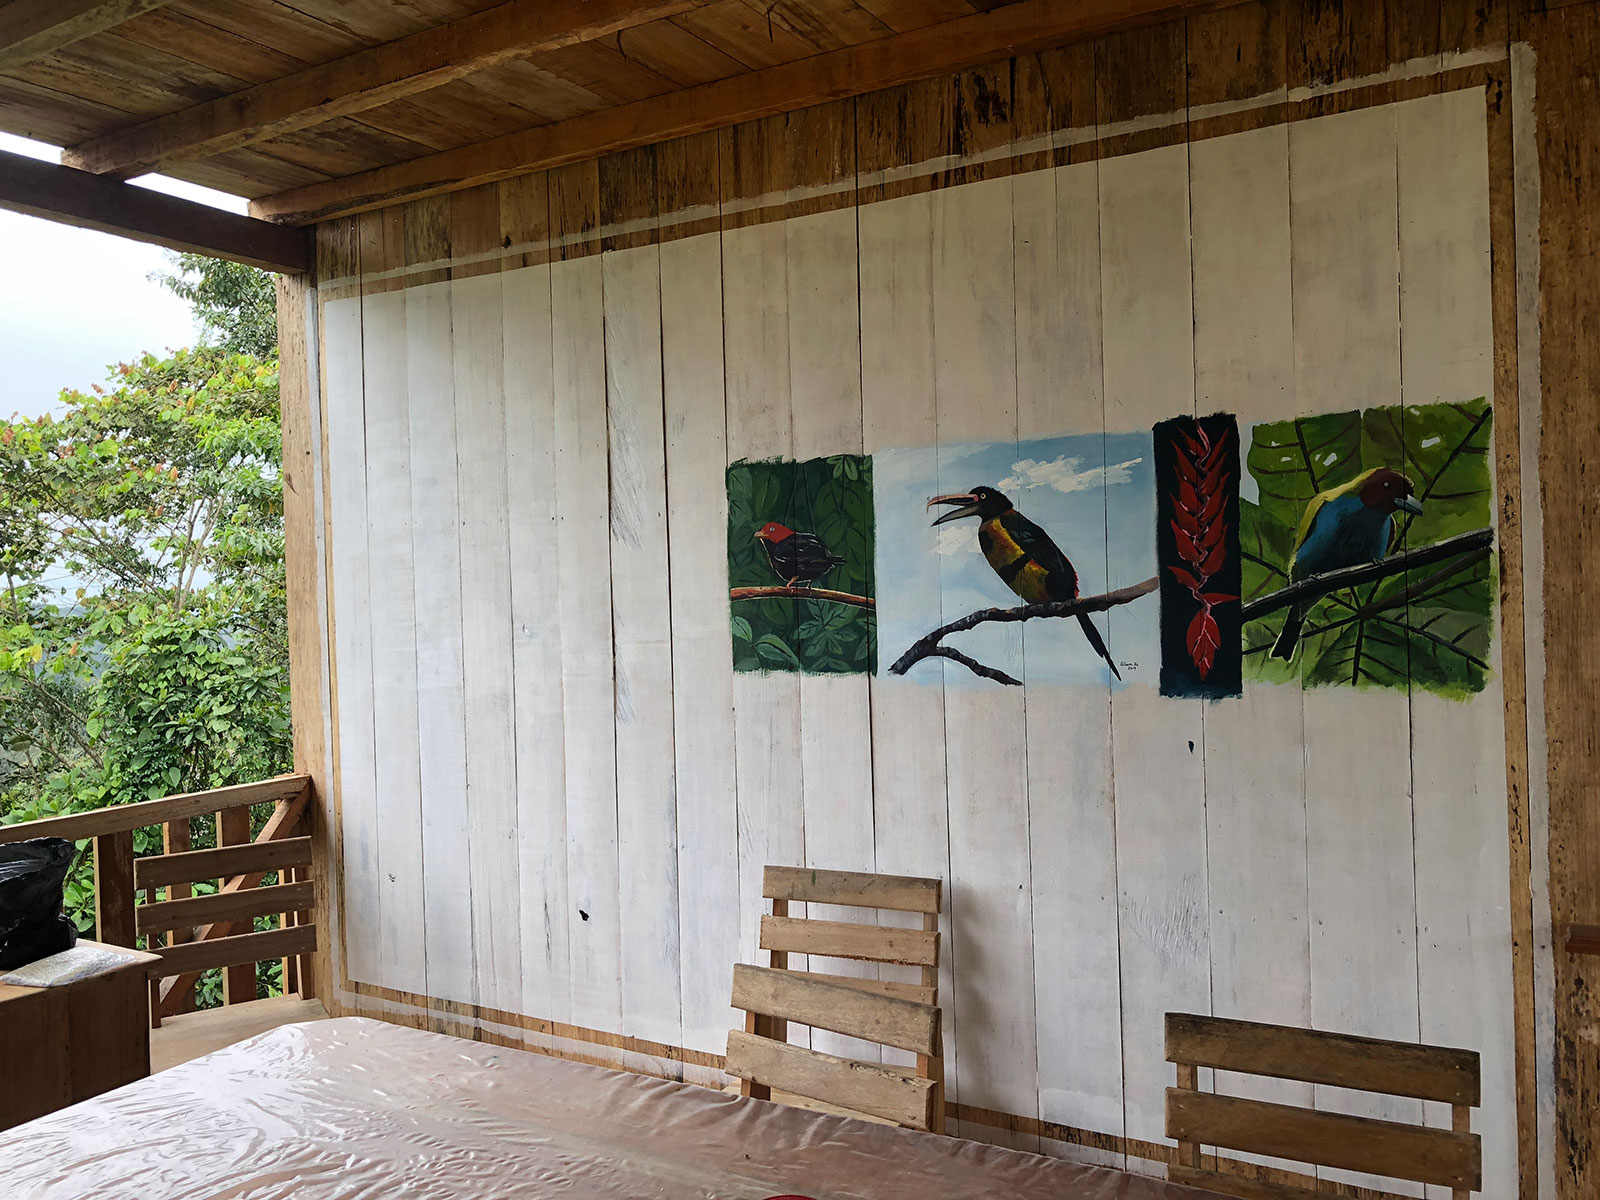 An exterior wall of the FCAT station contains a mural of local birds